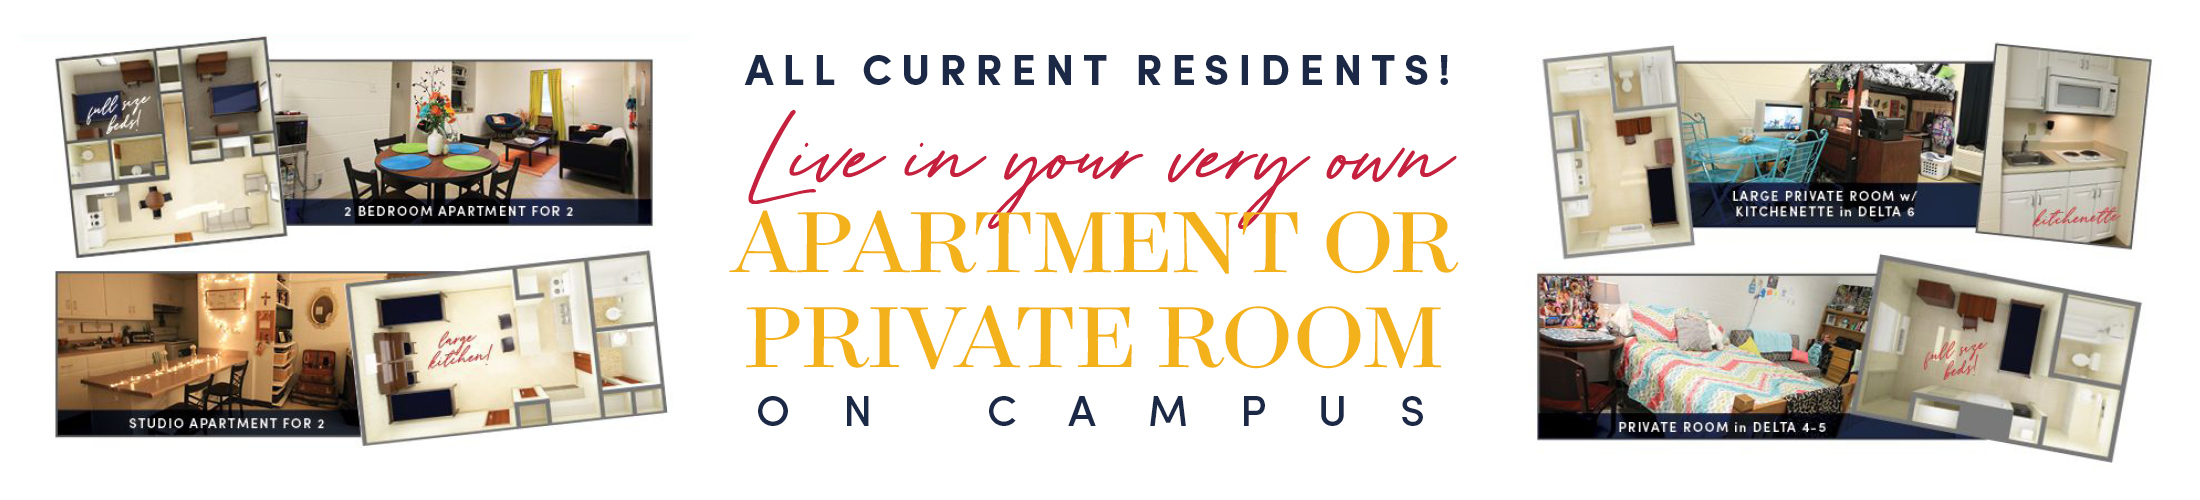 Images of dorm rooms with text All current Residents live om upir very own apartment or private room on campus